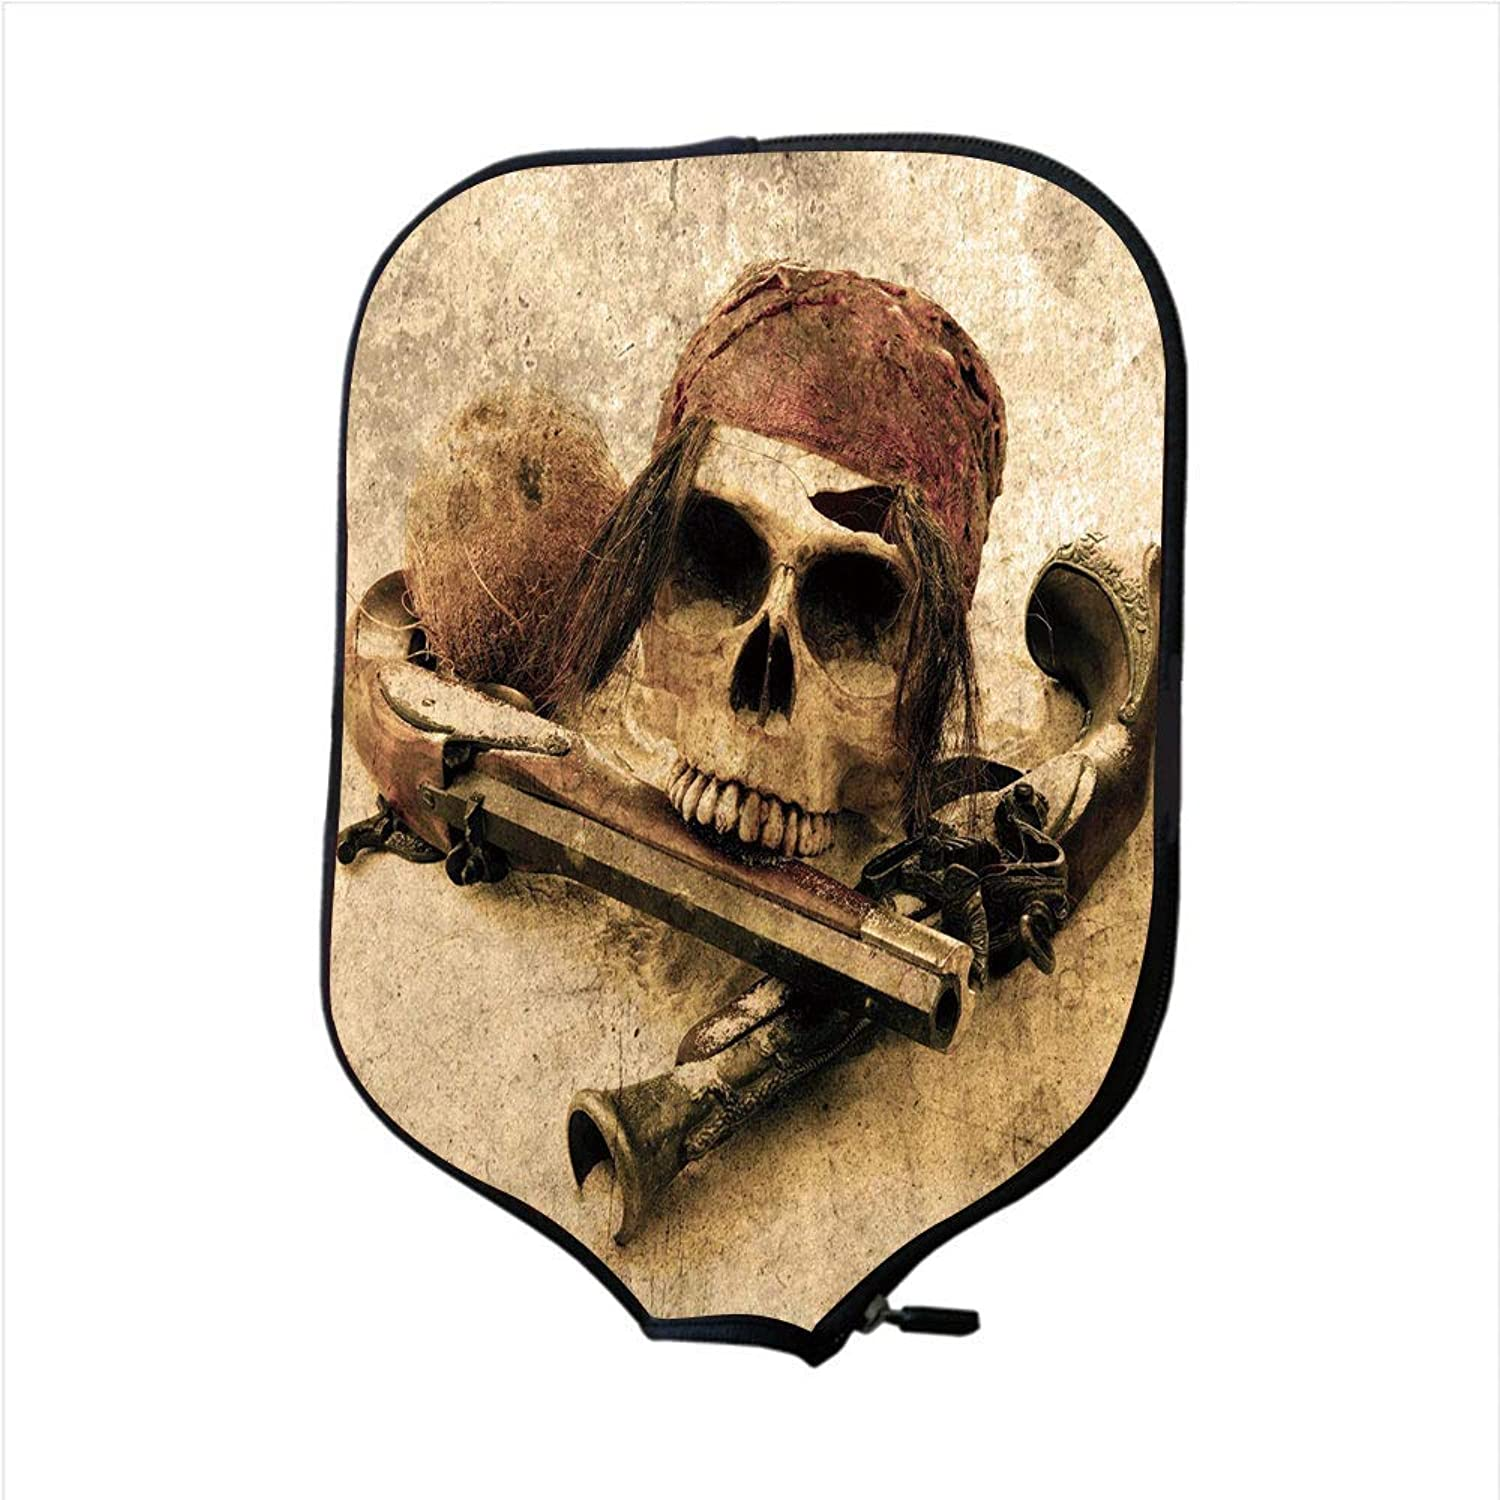 Fine Neoprene Pickleball Paddle Racket Cover Case,Pirate,Pirate Skull with Headscarf and Guns on Beach Grunge Display Danger Robbery Death Decorative,Light Brown,Fit for Most Rackets